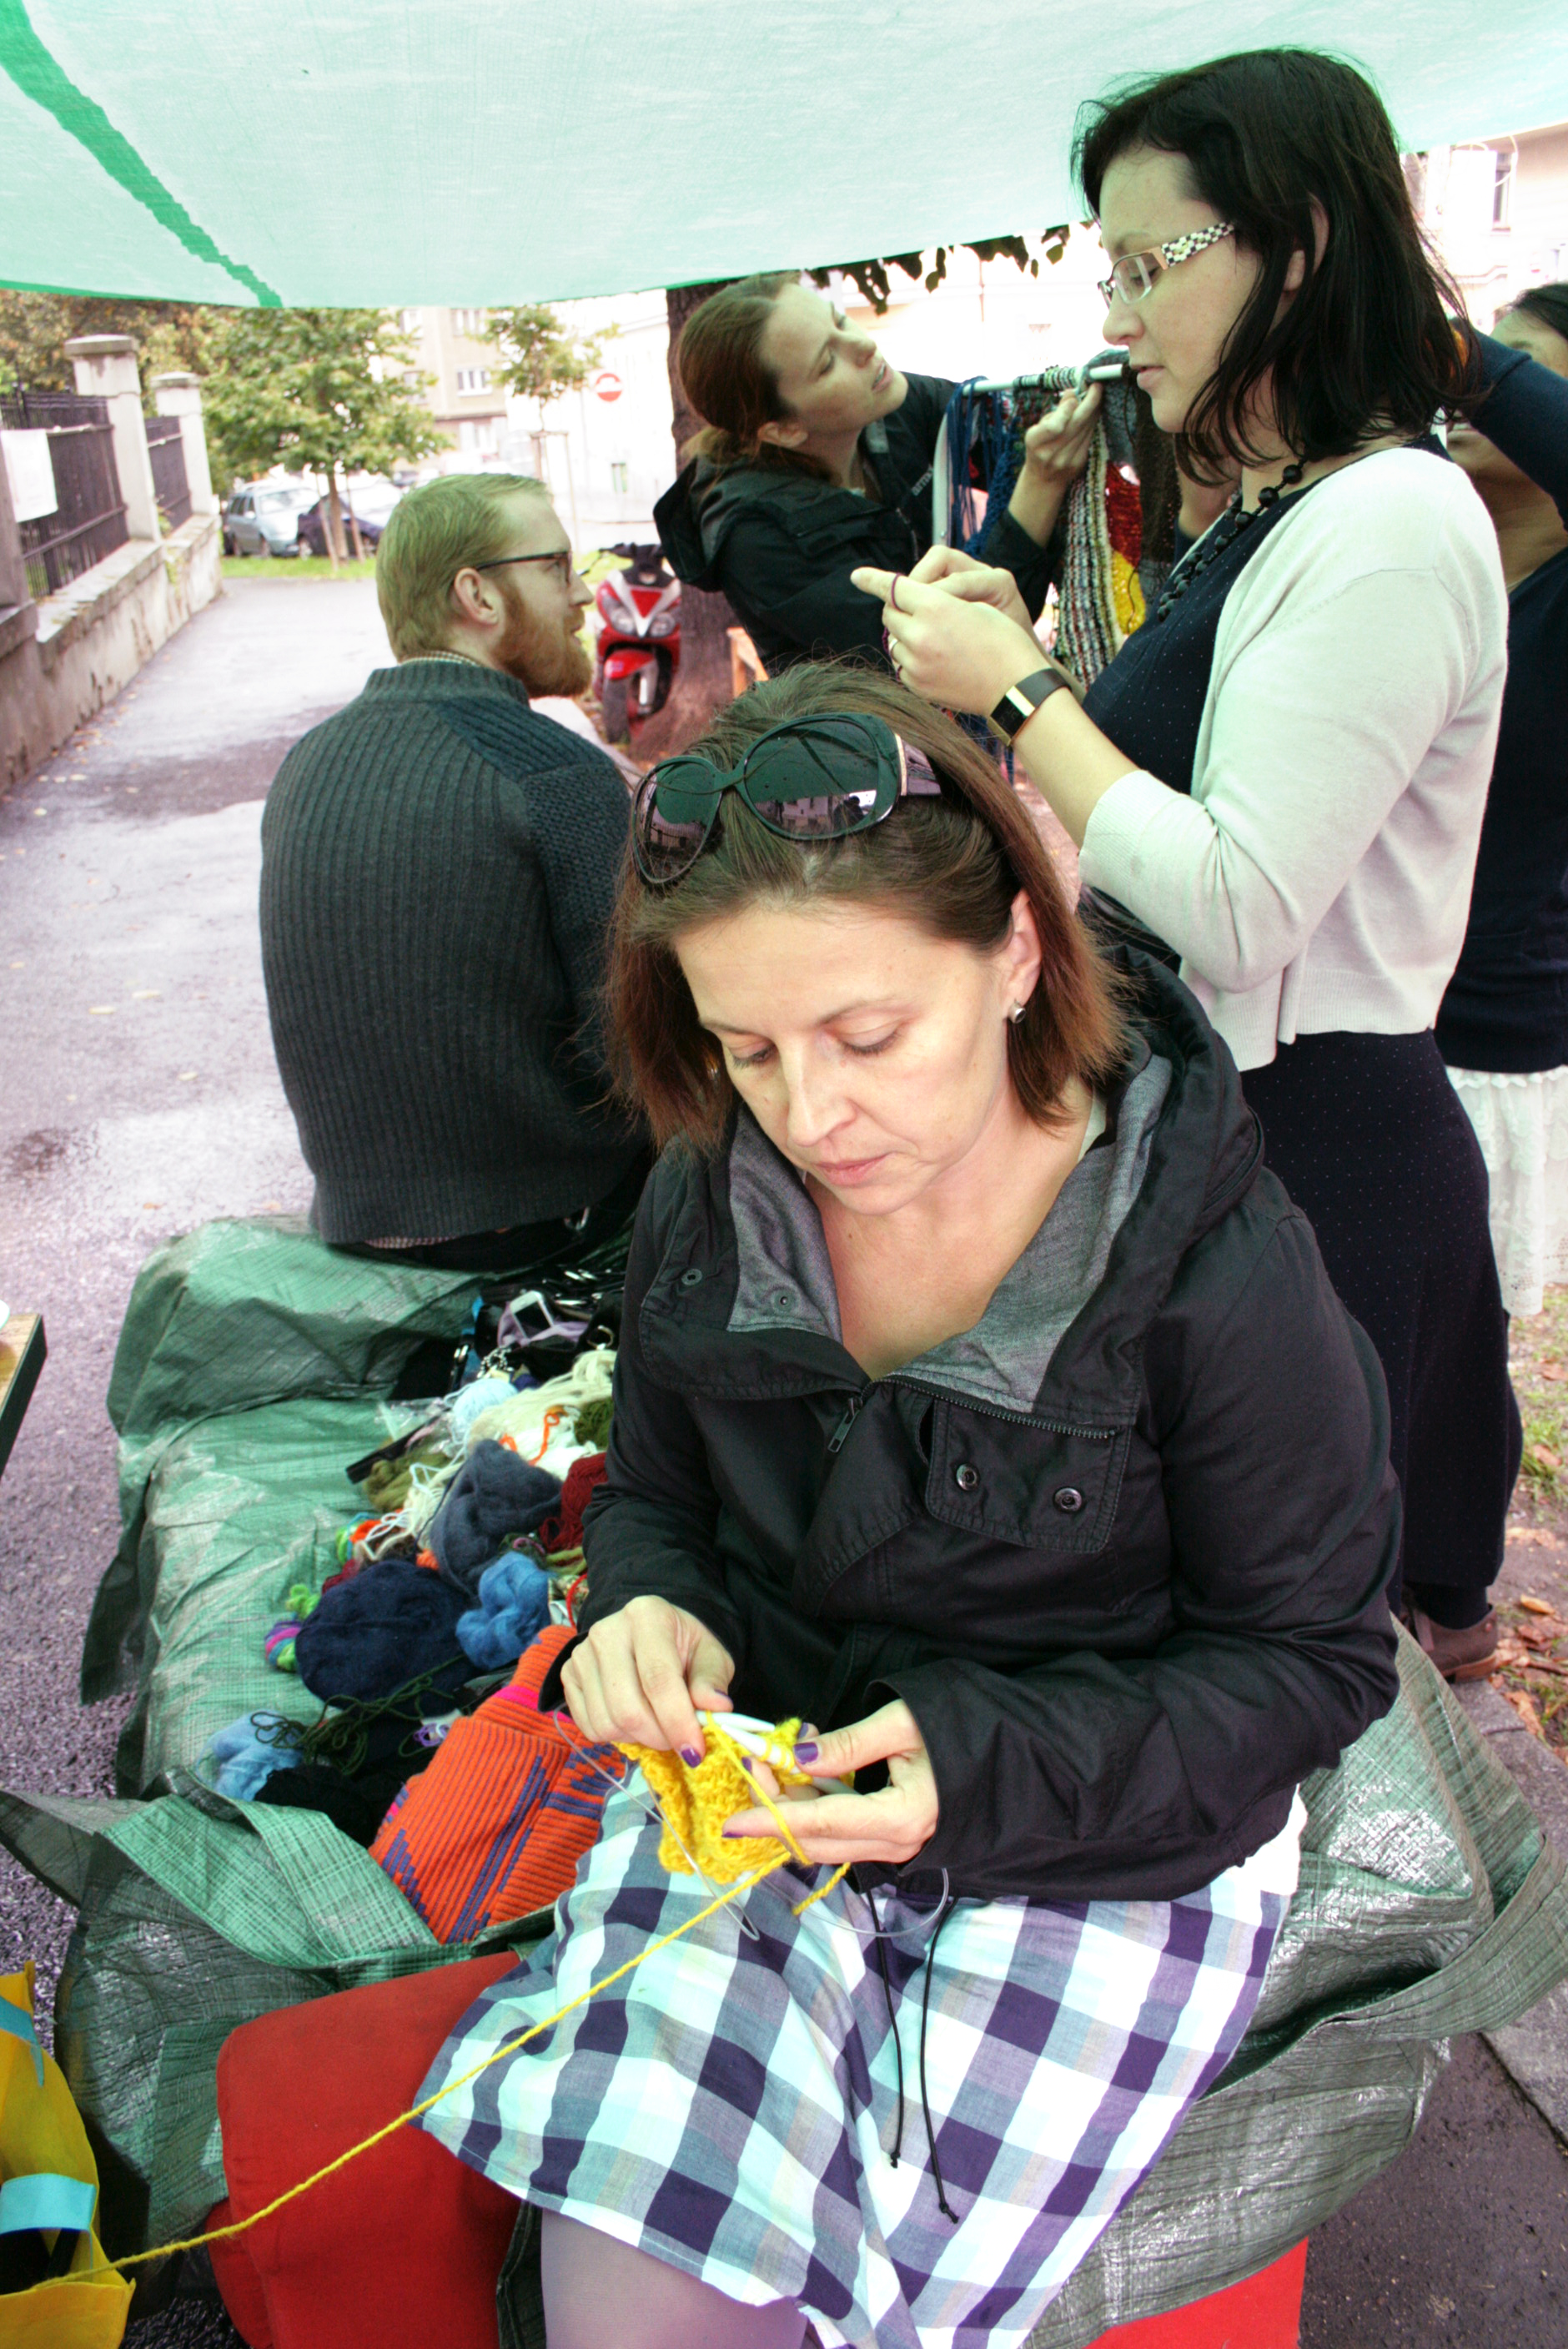 knitting at ZMJ14 2